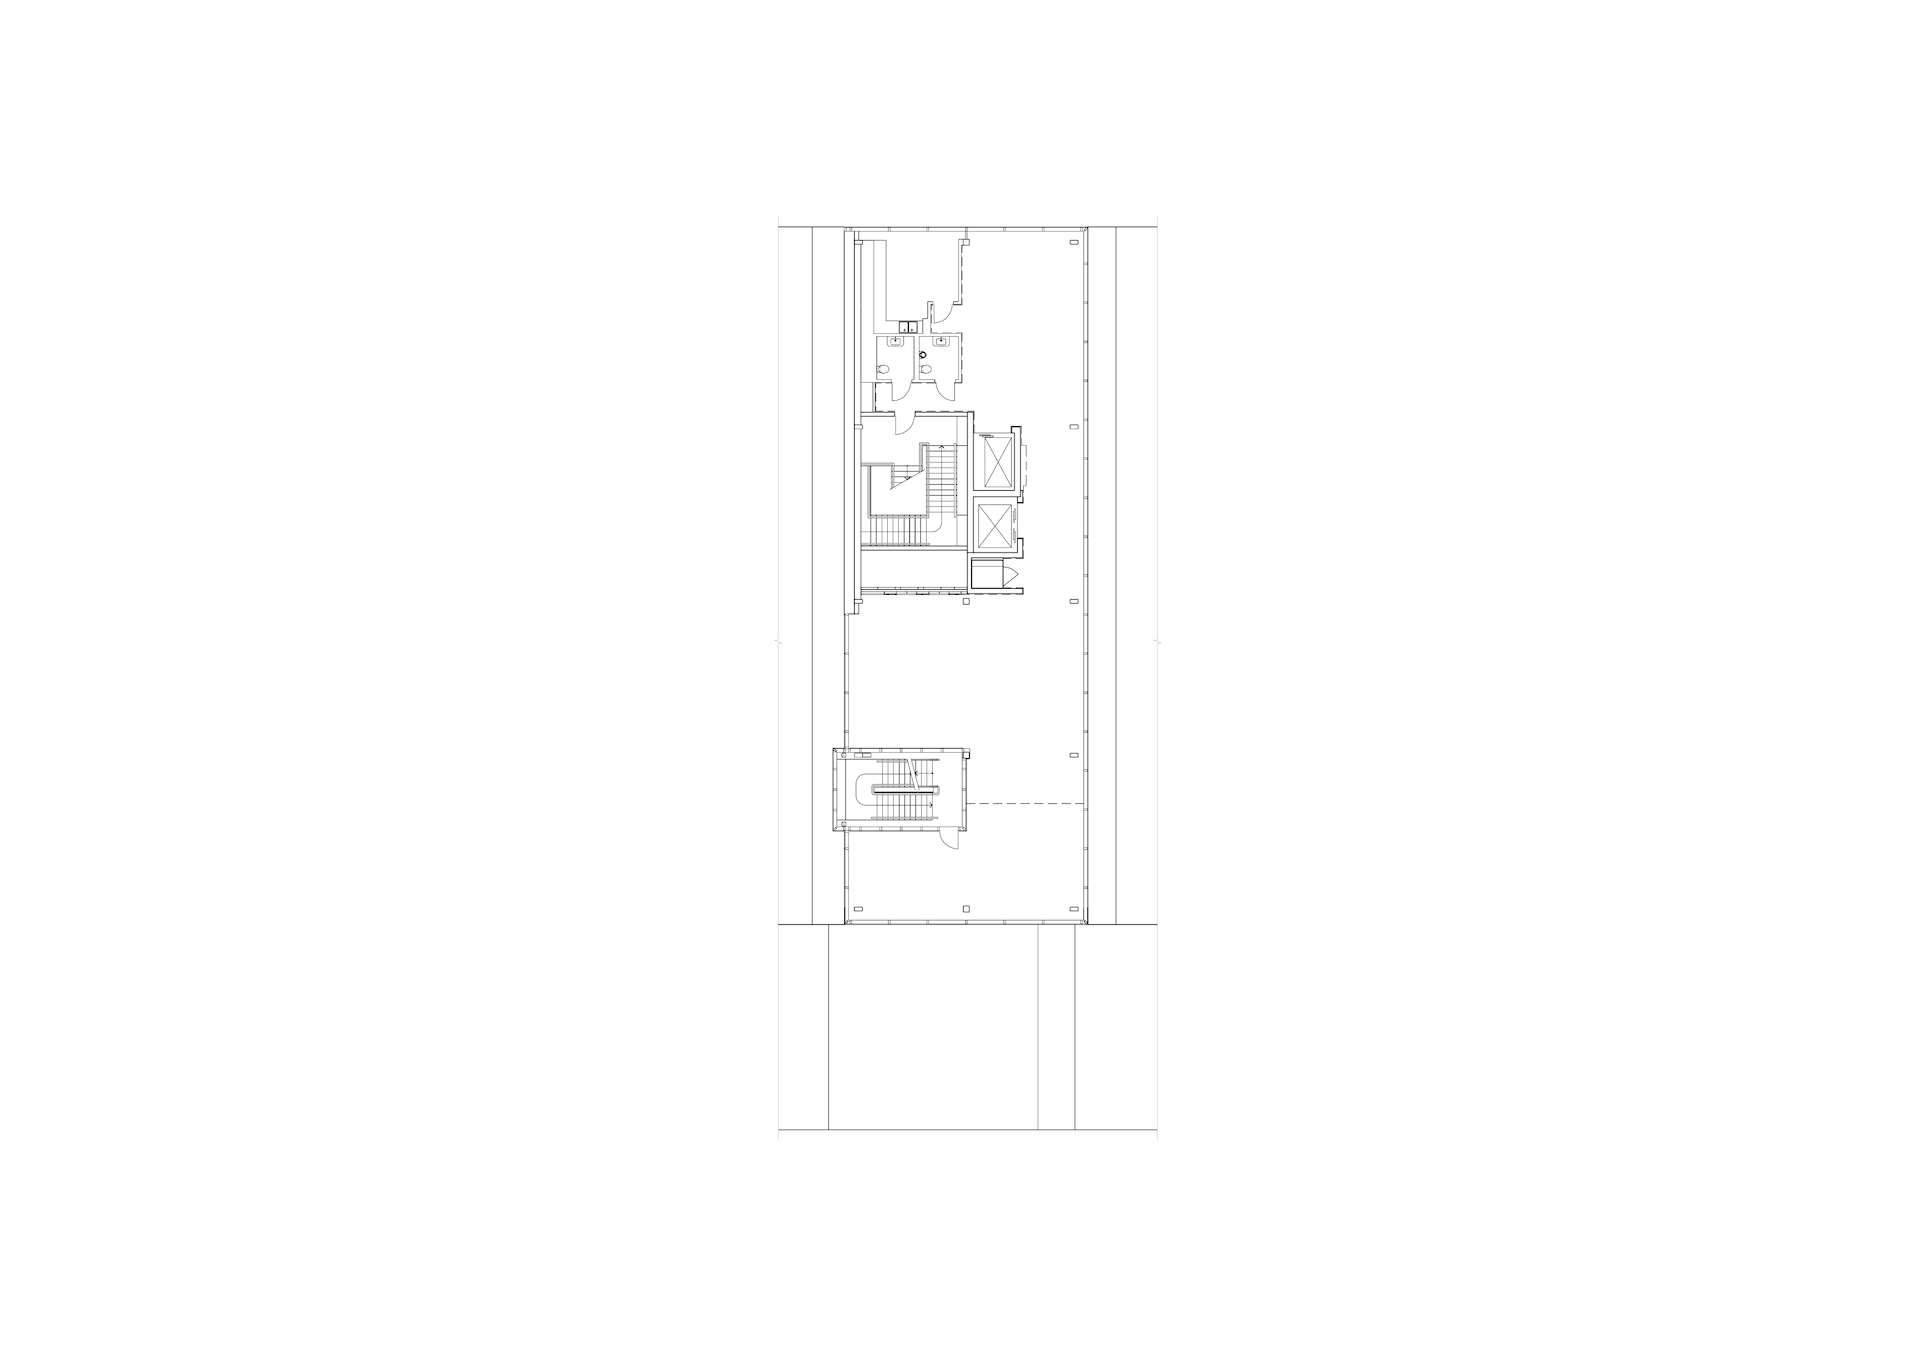 latvia national library building architecture design plan